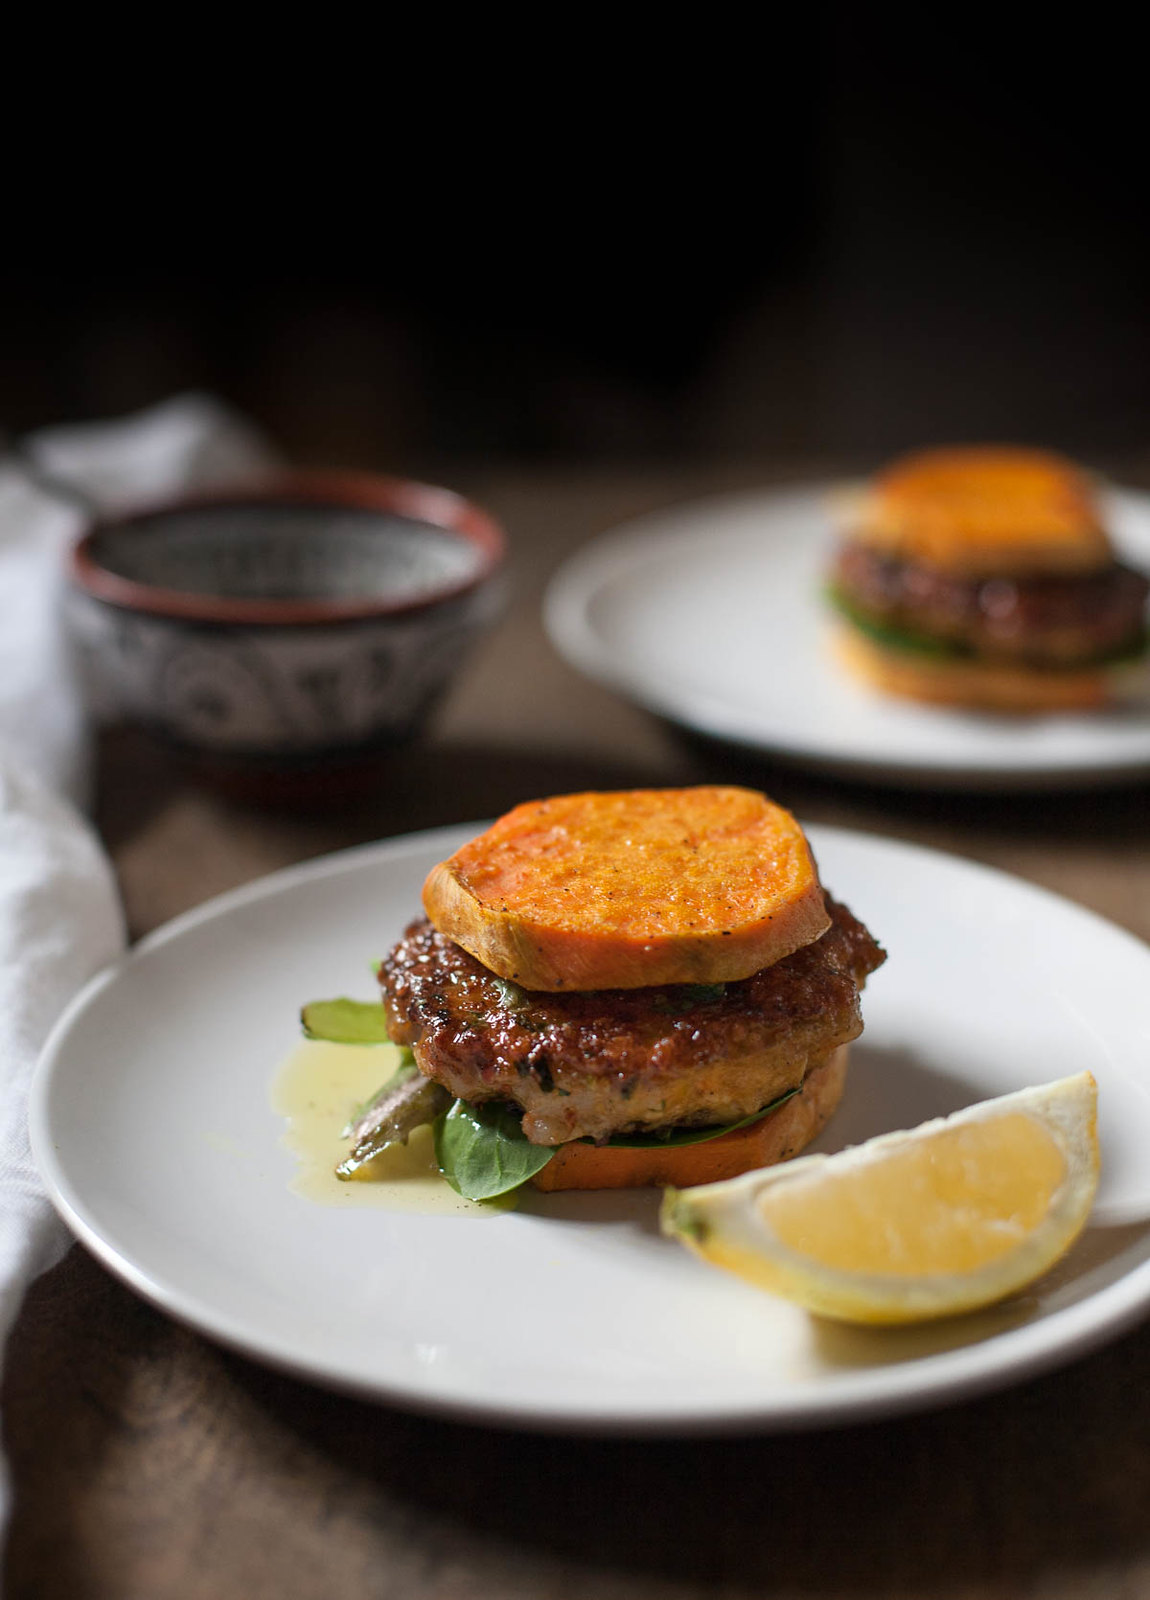 Shrimp Burgers with Lemon Caper Relish and Sweet Potato Buns (Gluten free, Grain free, Paleo, Whole30)